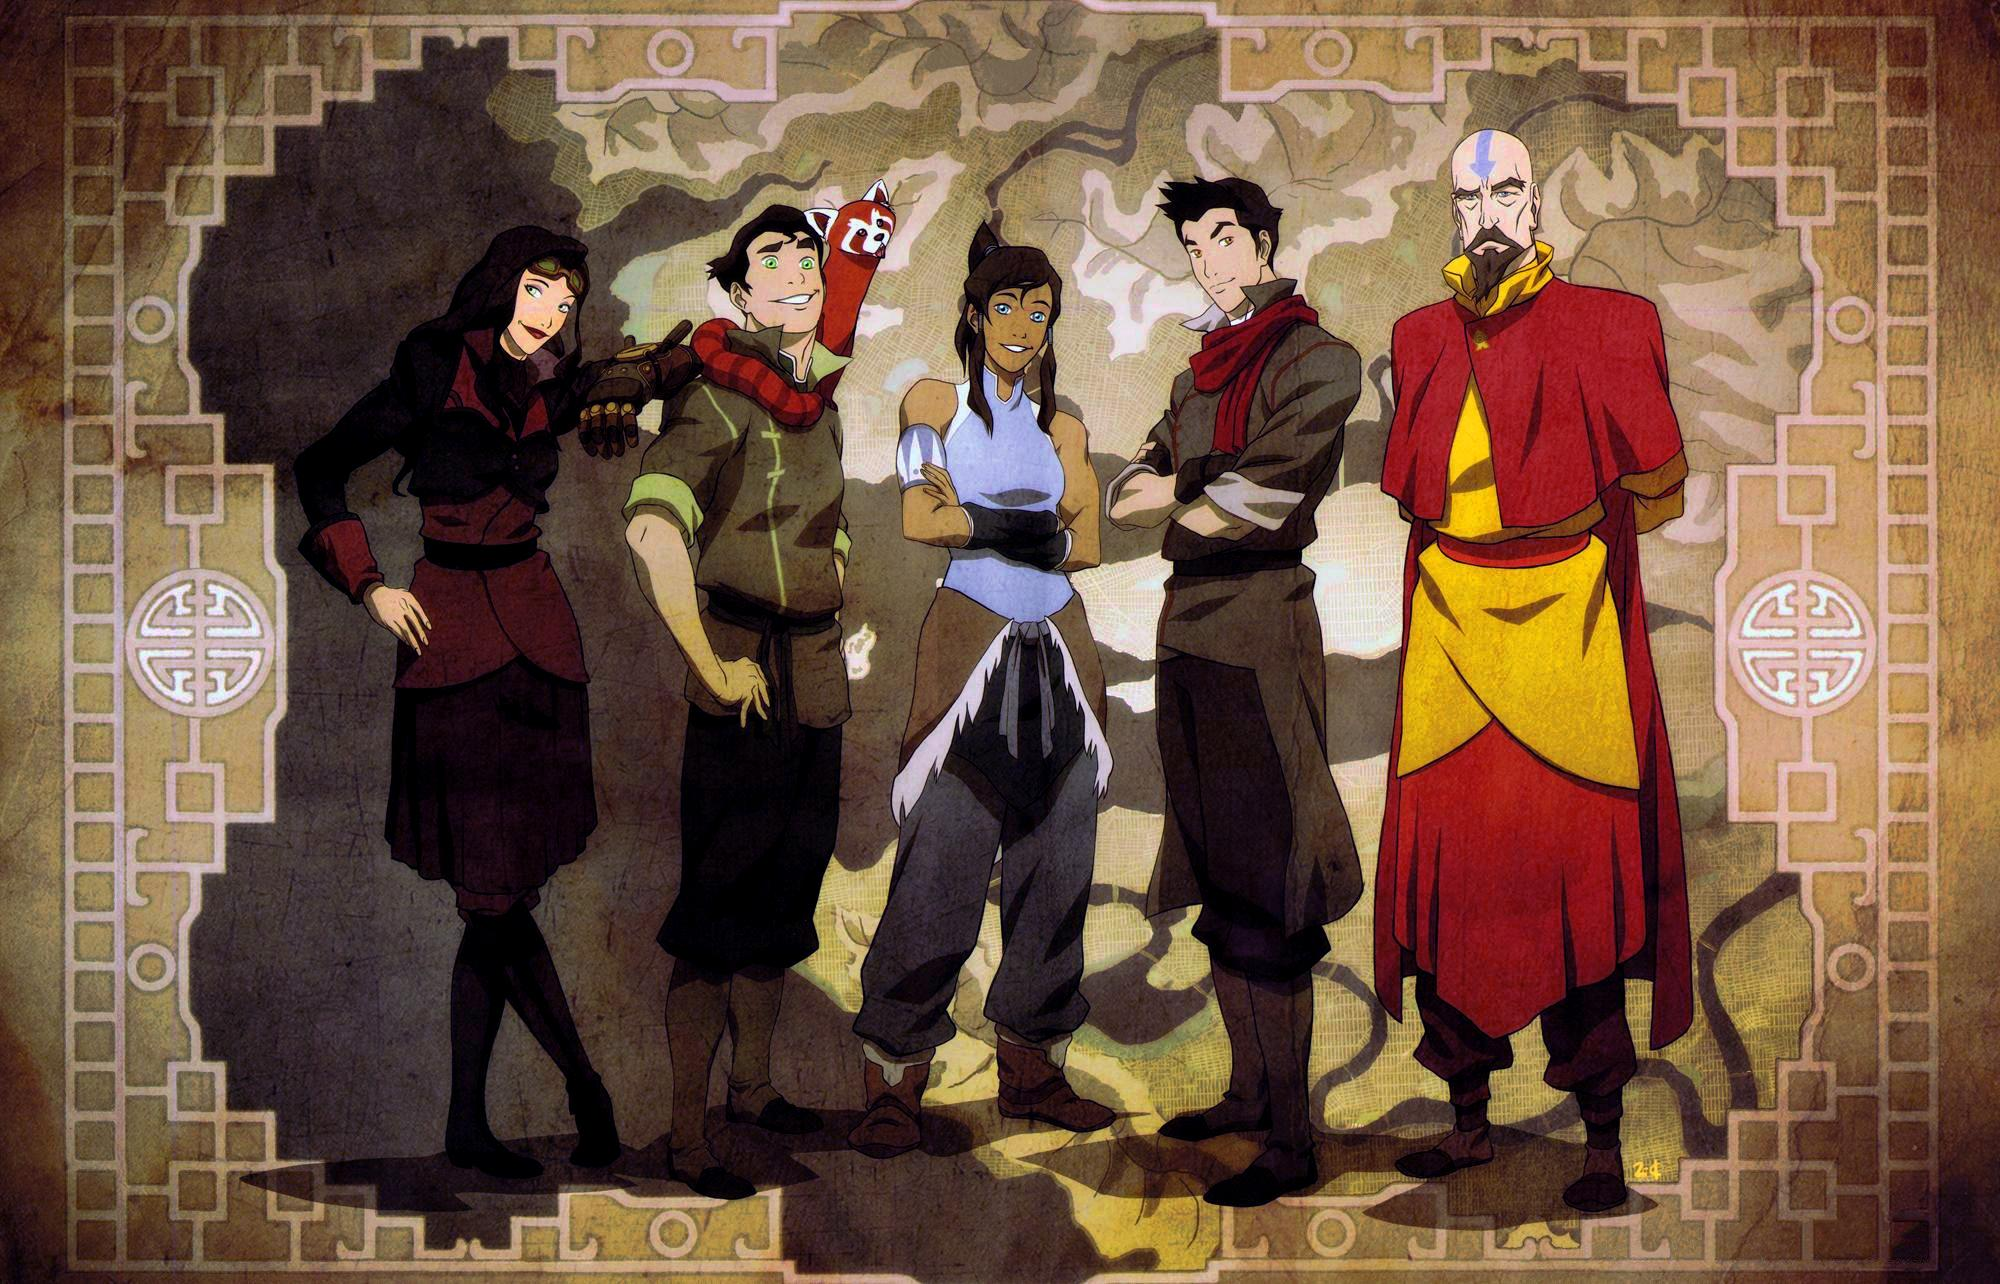 Avatar The Last Airbender Characters As Adults 40 Avatar the last Air...